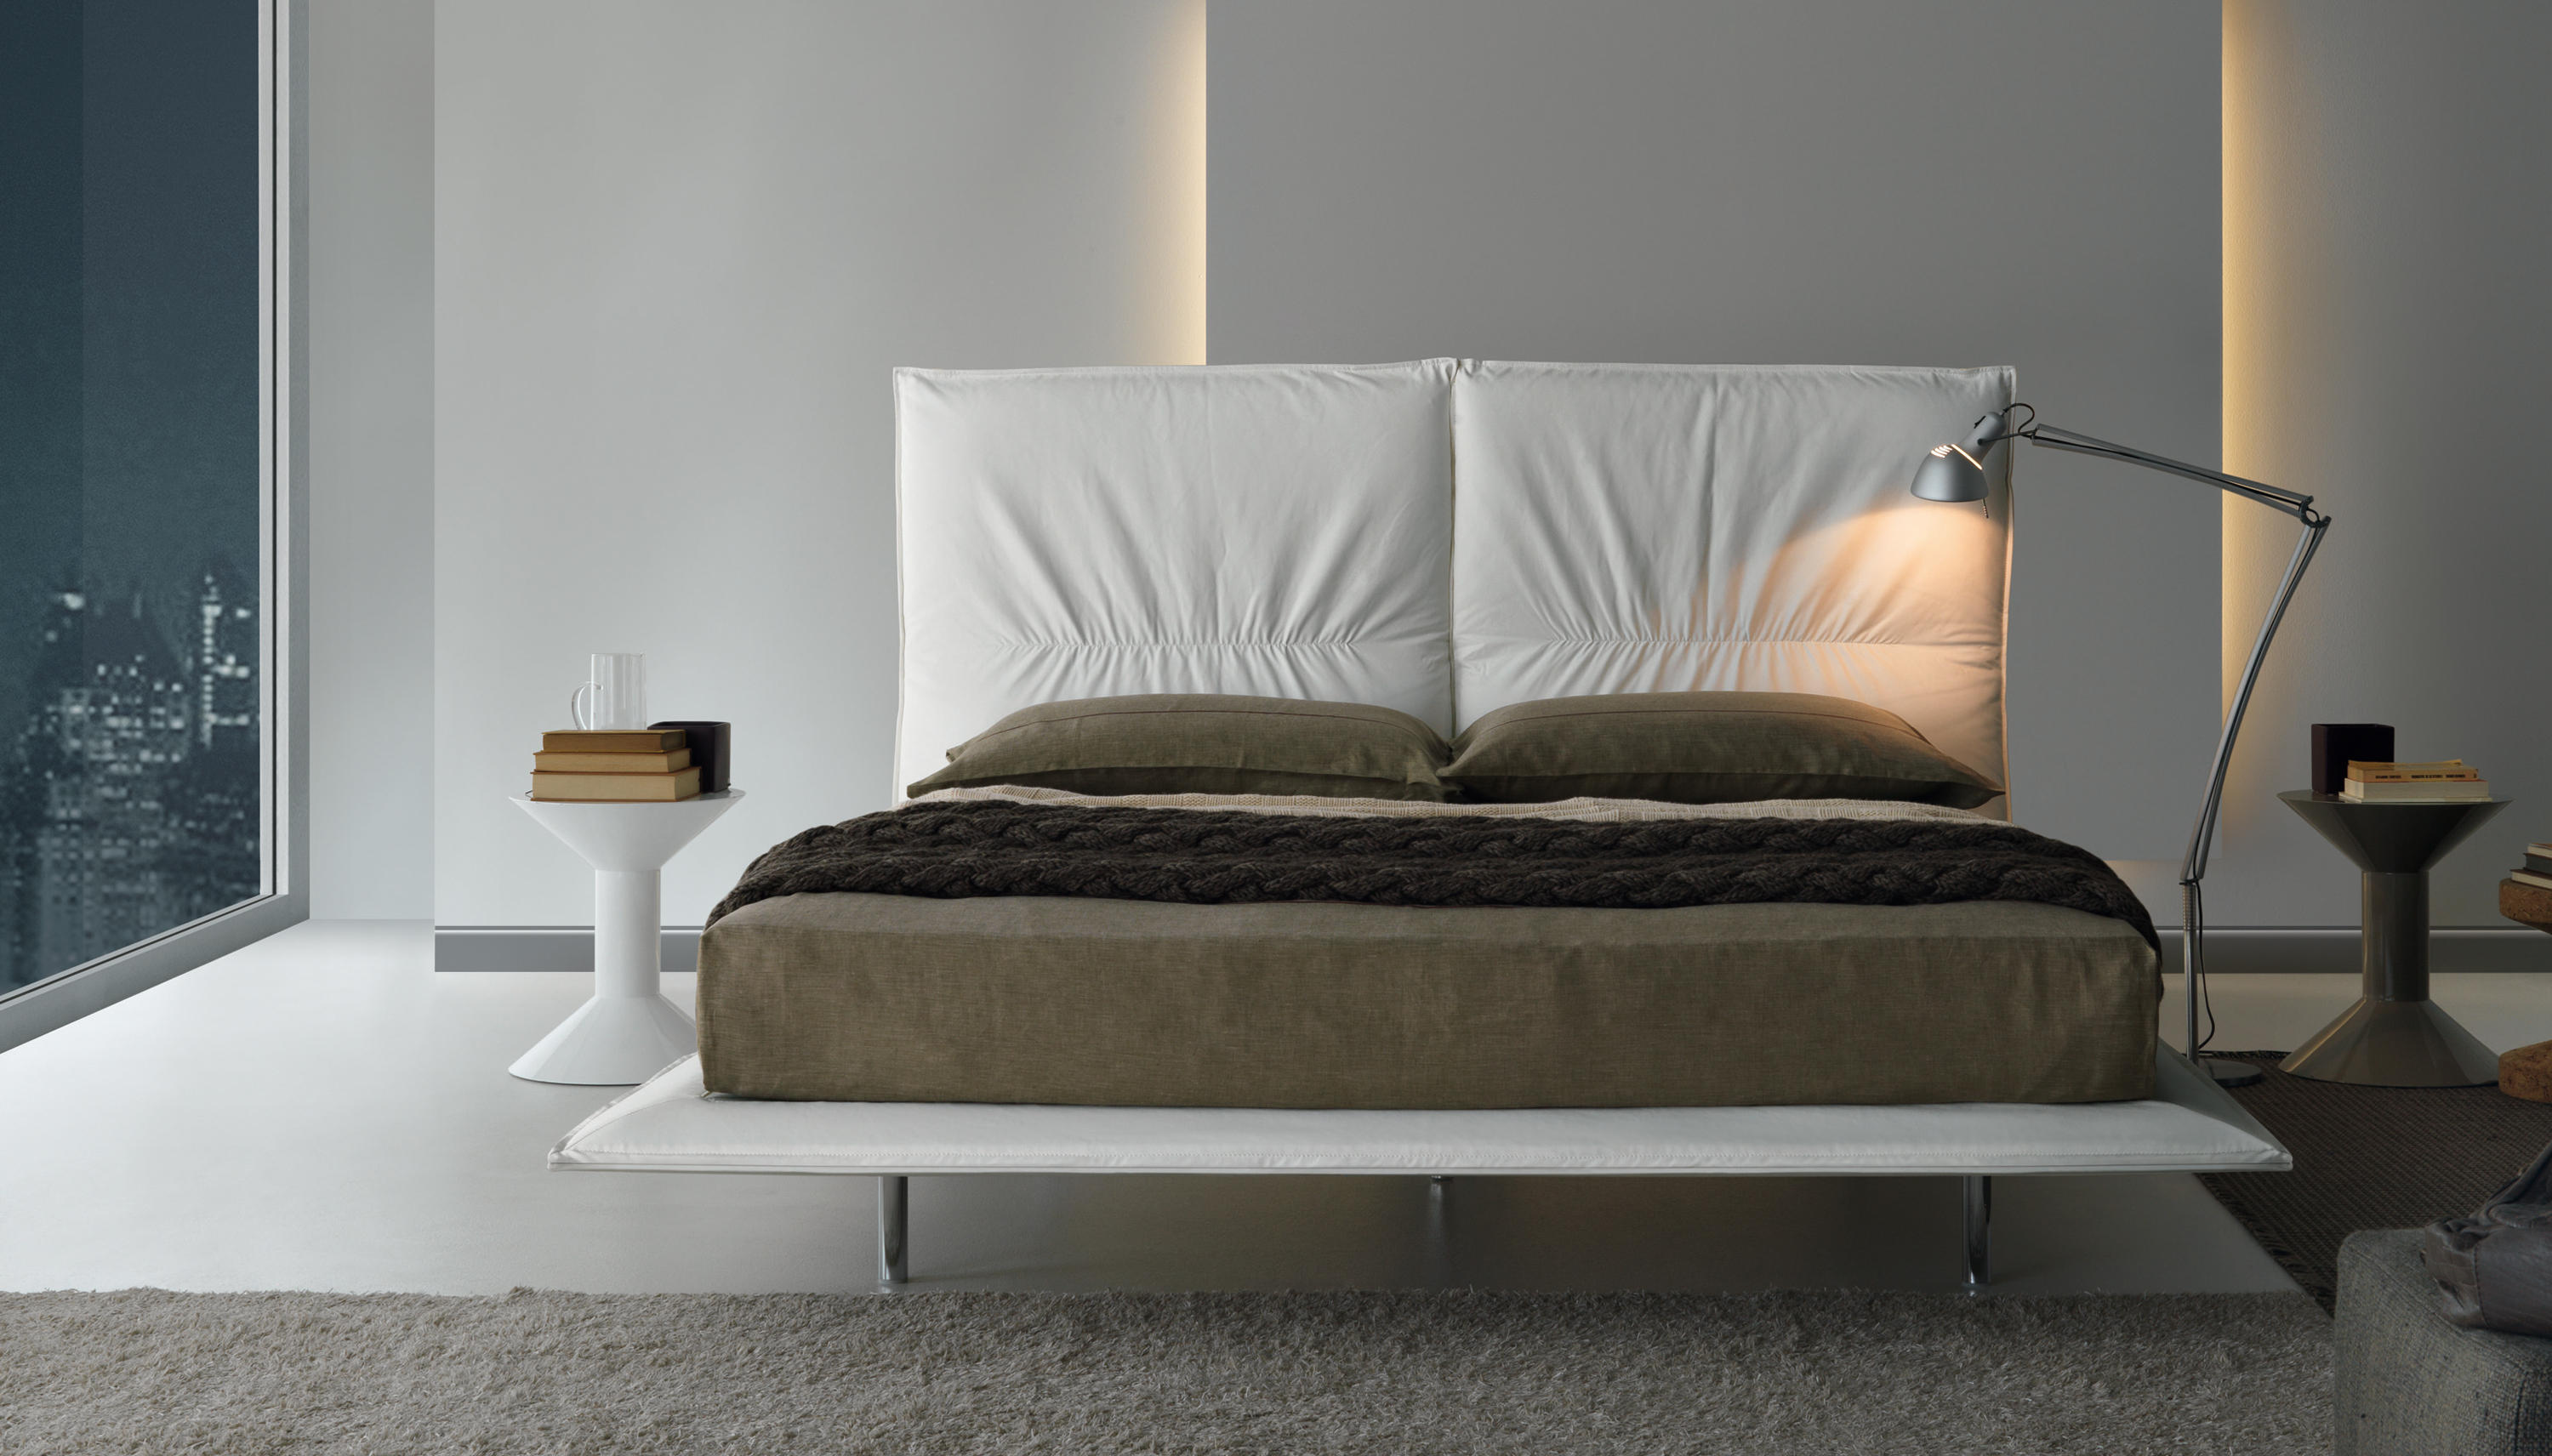 Pretty Double Beds From Misura Emme Architonic